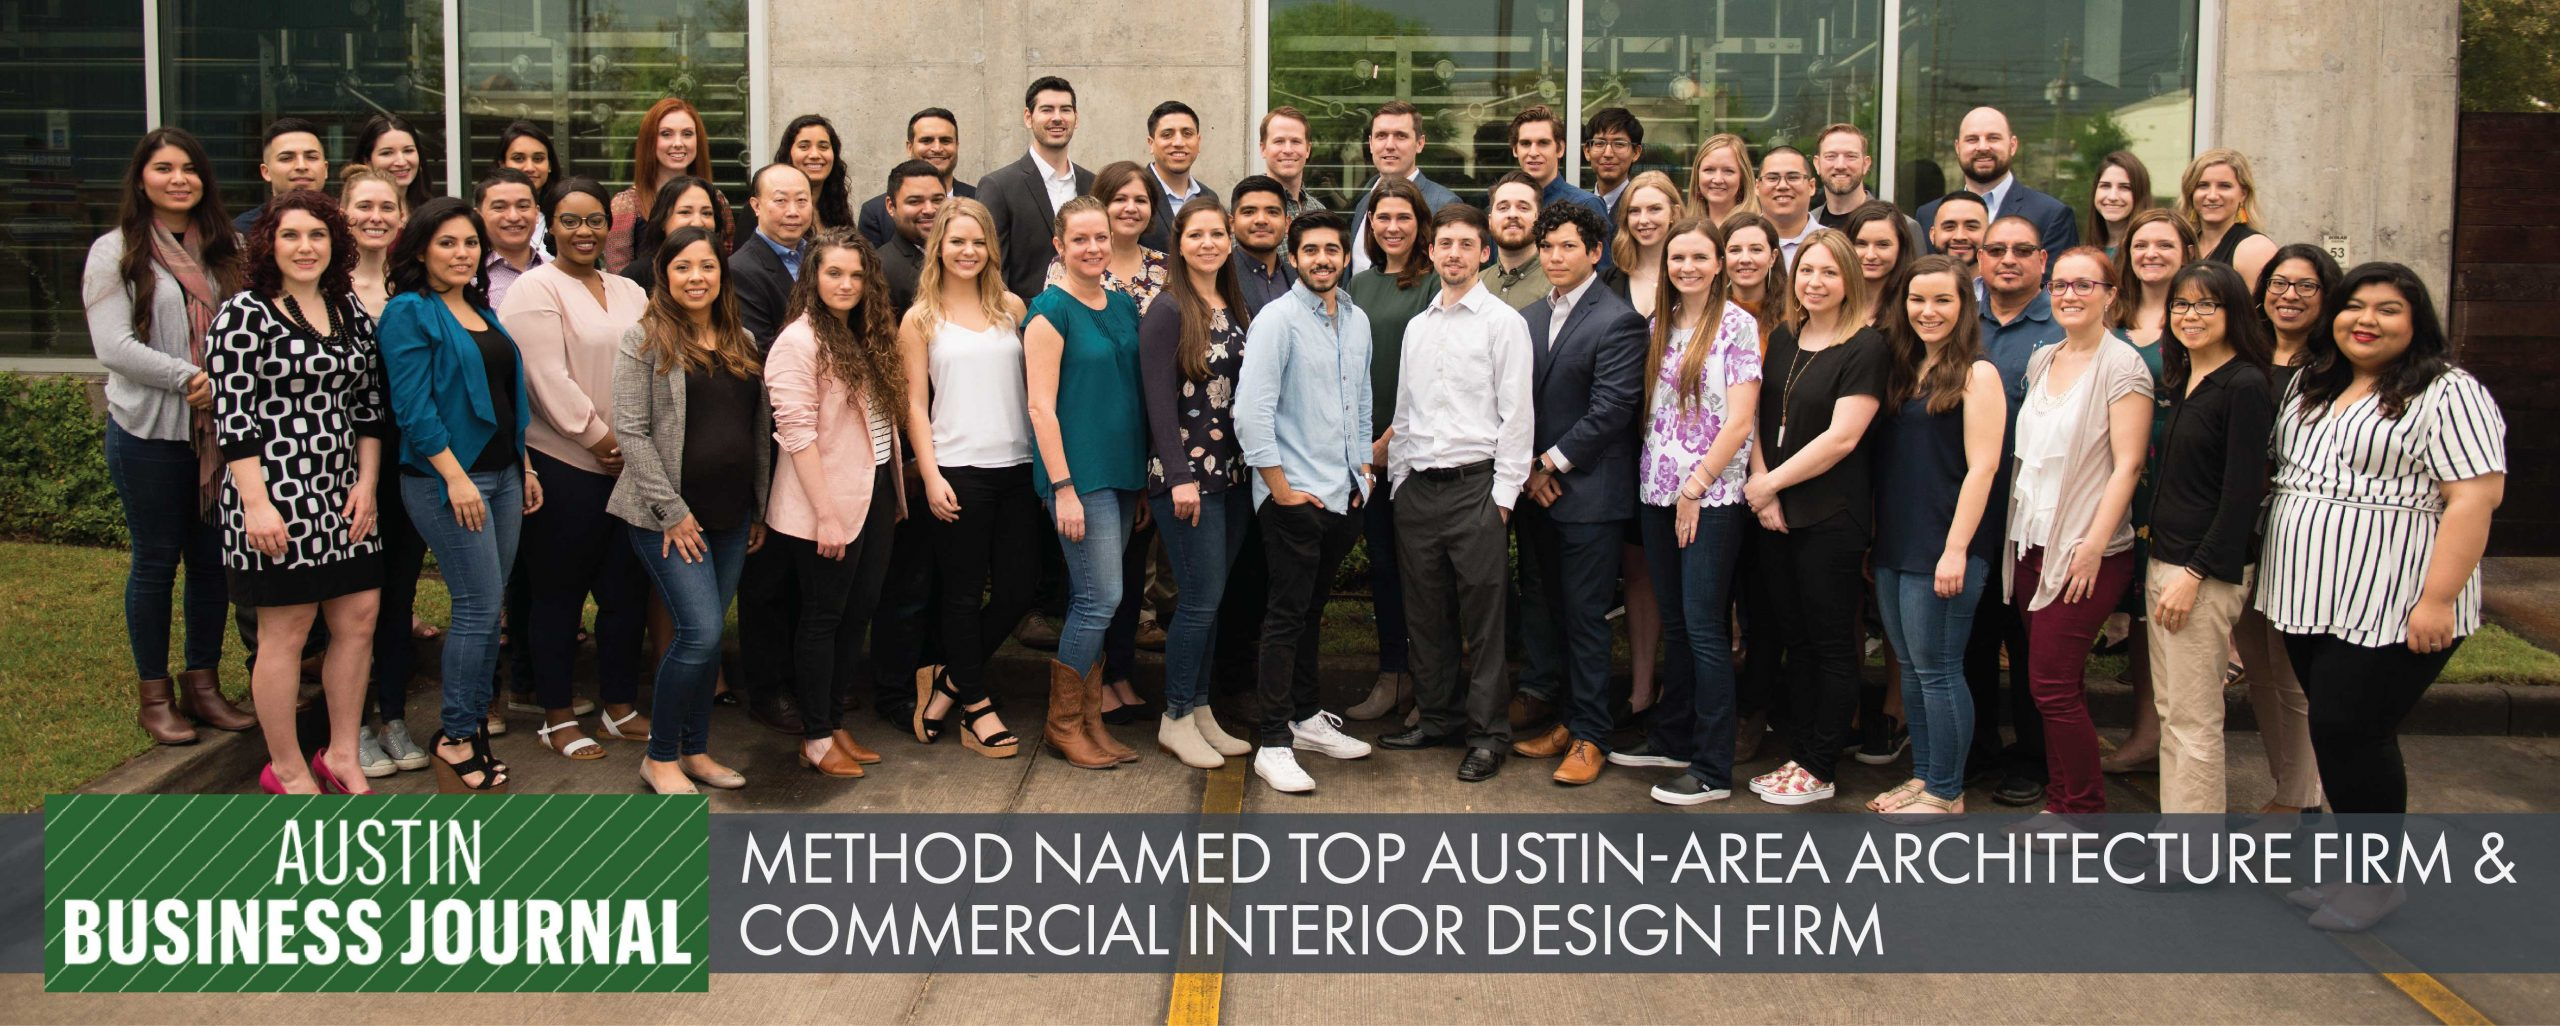 Method Architecture Named Top Austin-Area Architecture Firm and Commercial Interior Design Firm